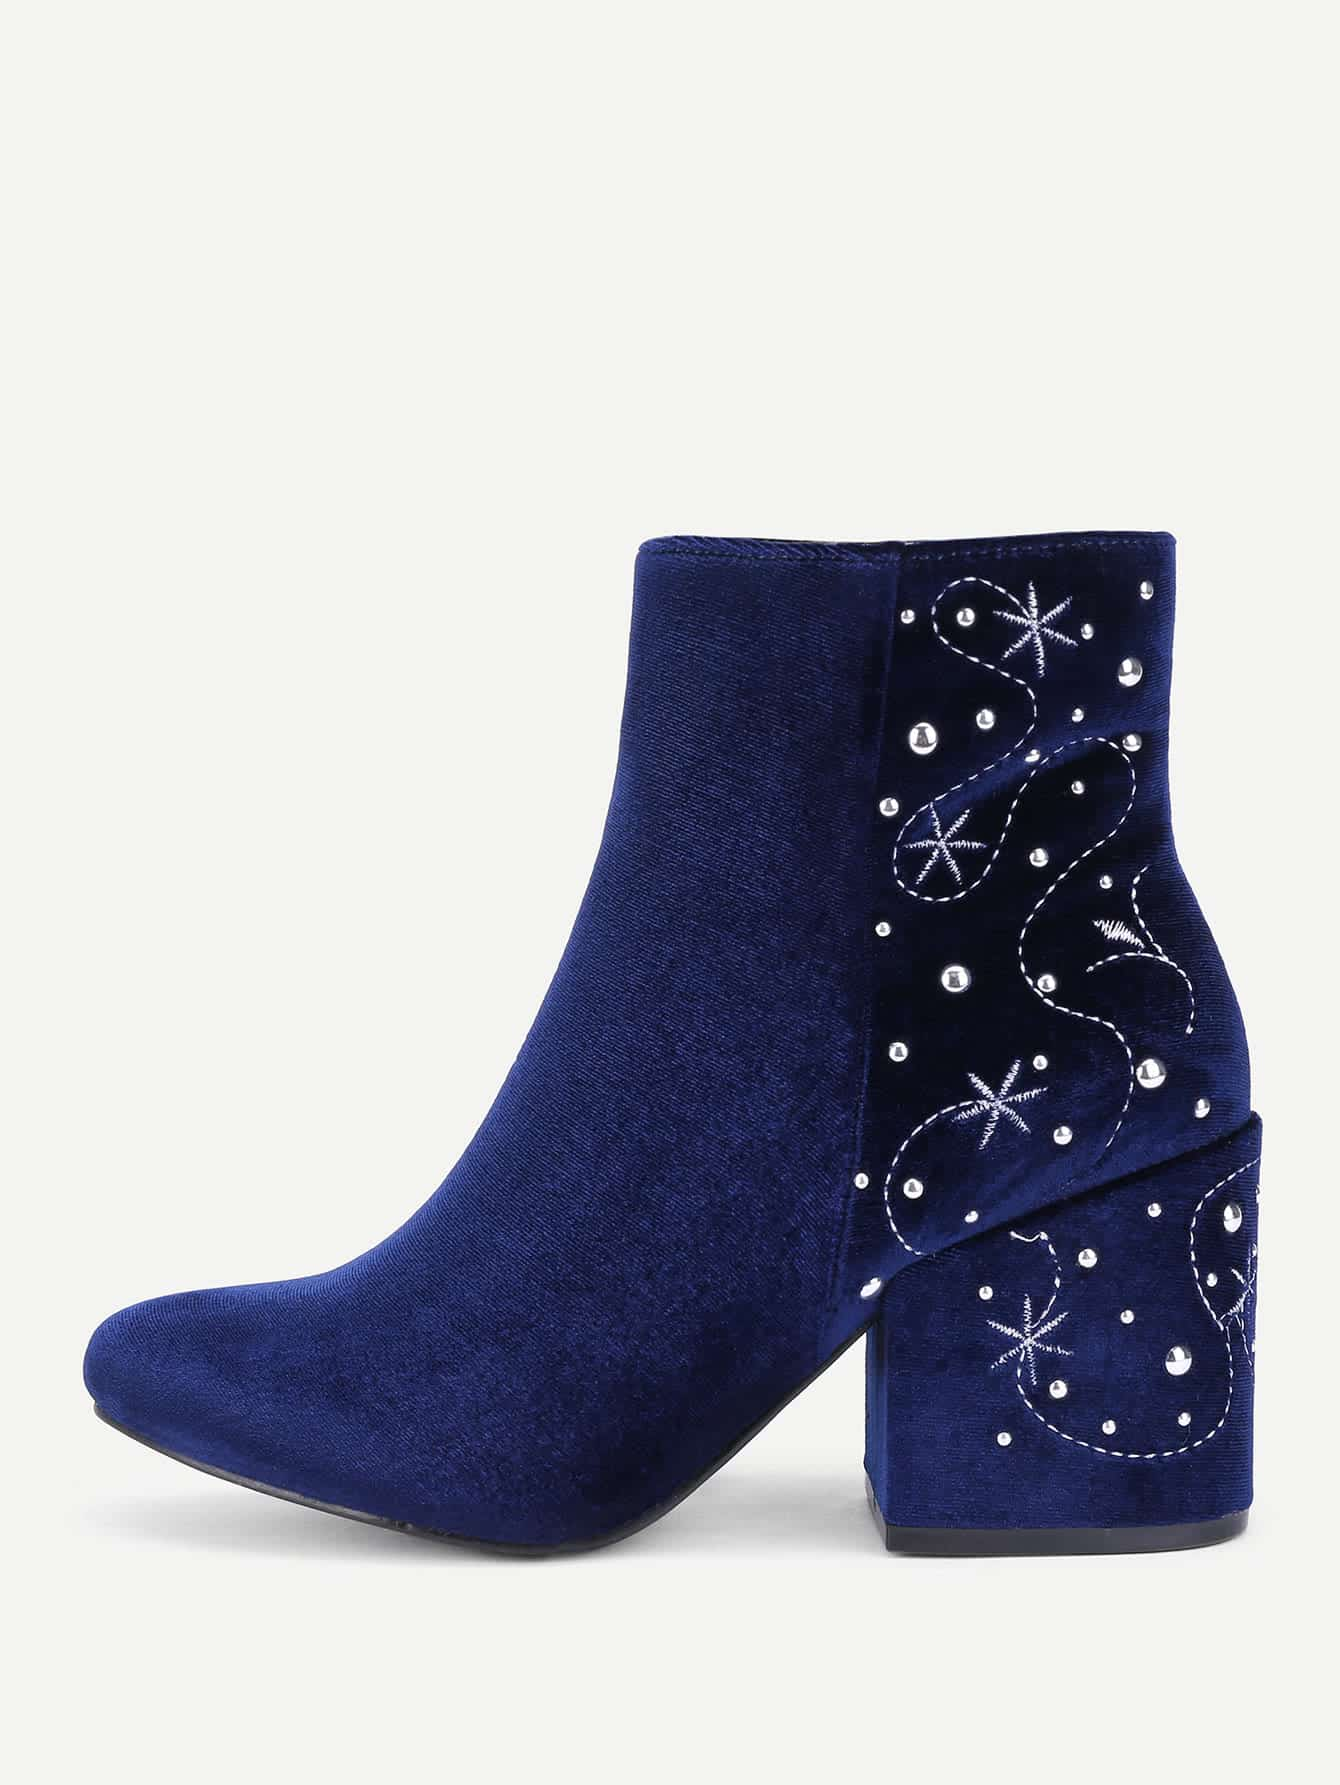 Embroidery & Rhinestone Detail Suede Boots стоимость